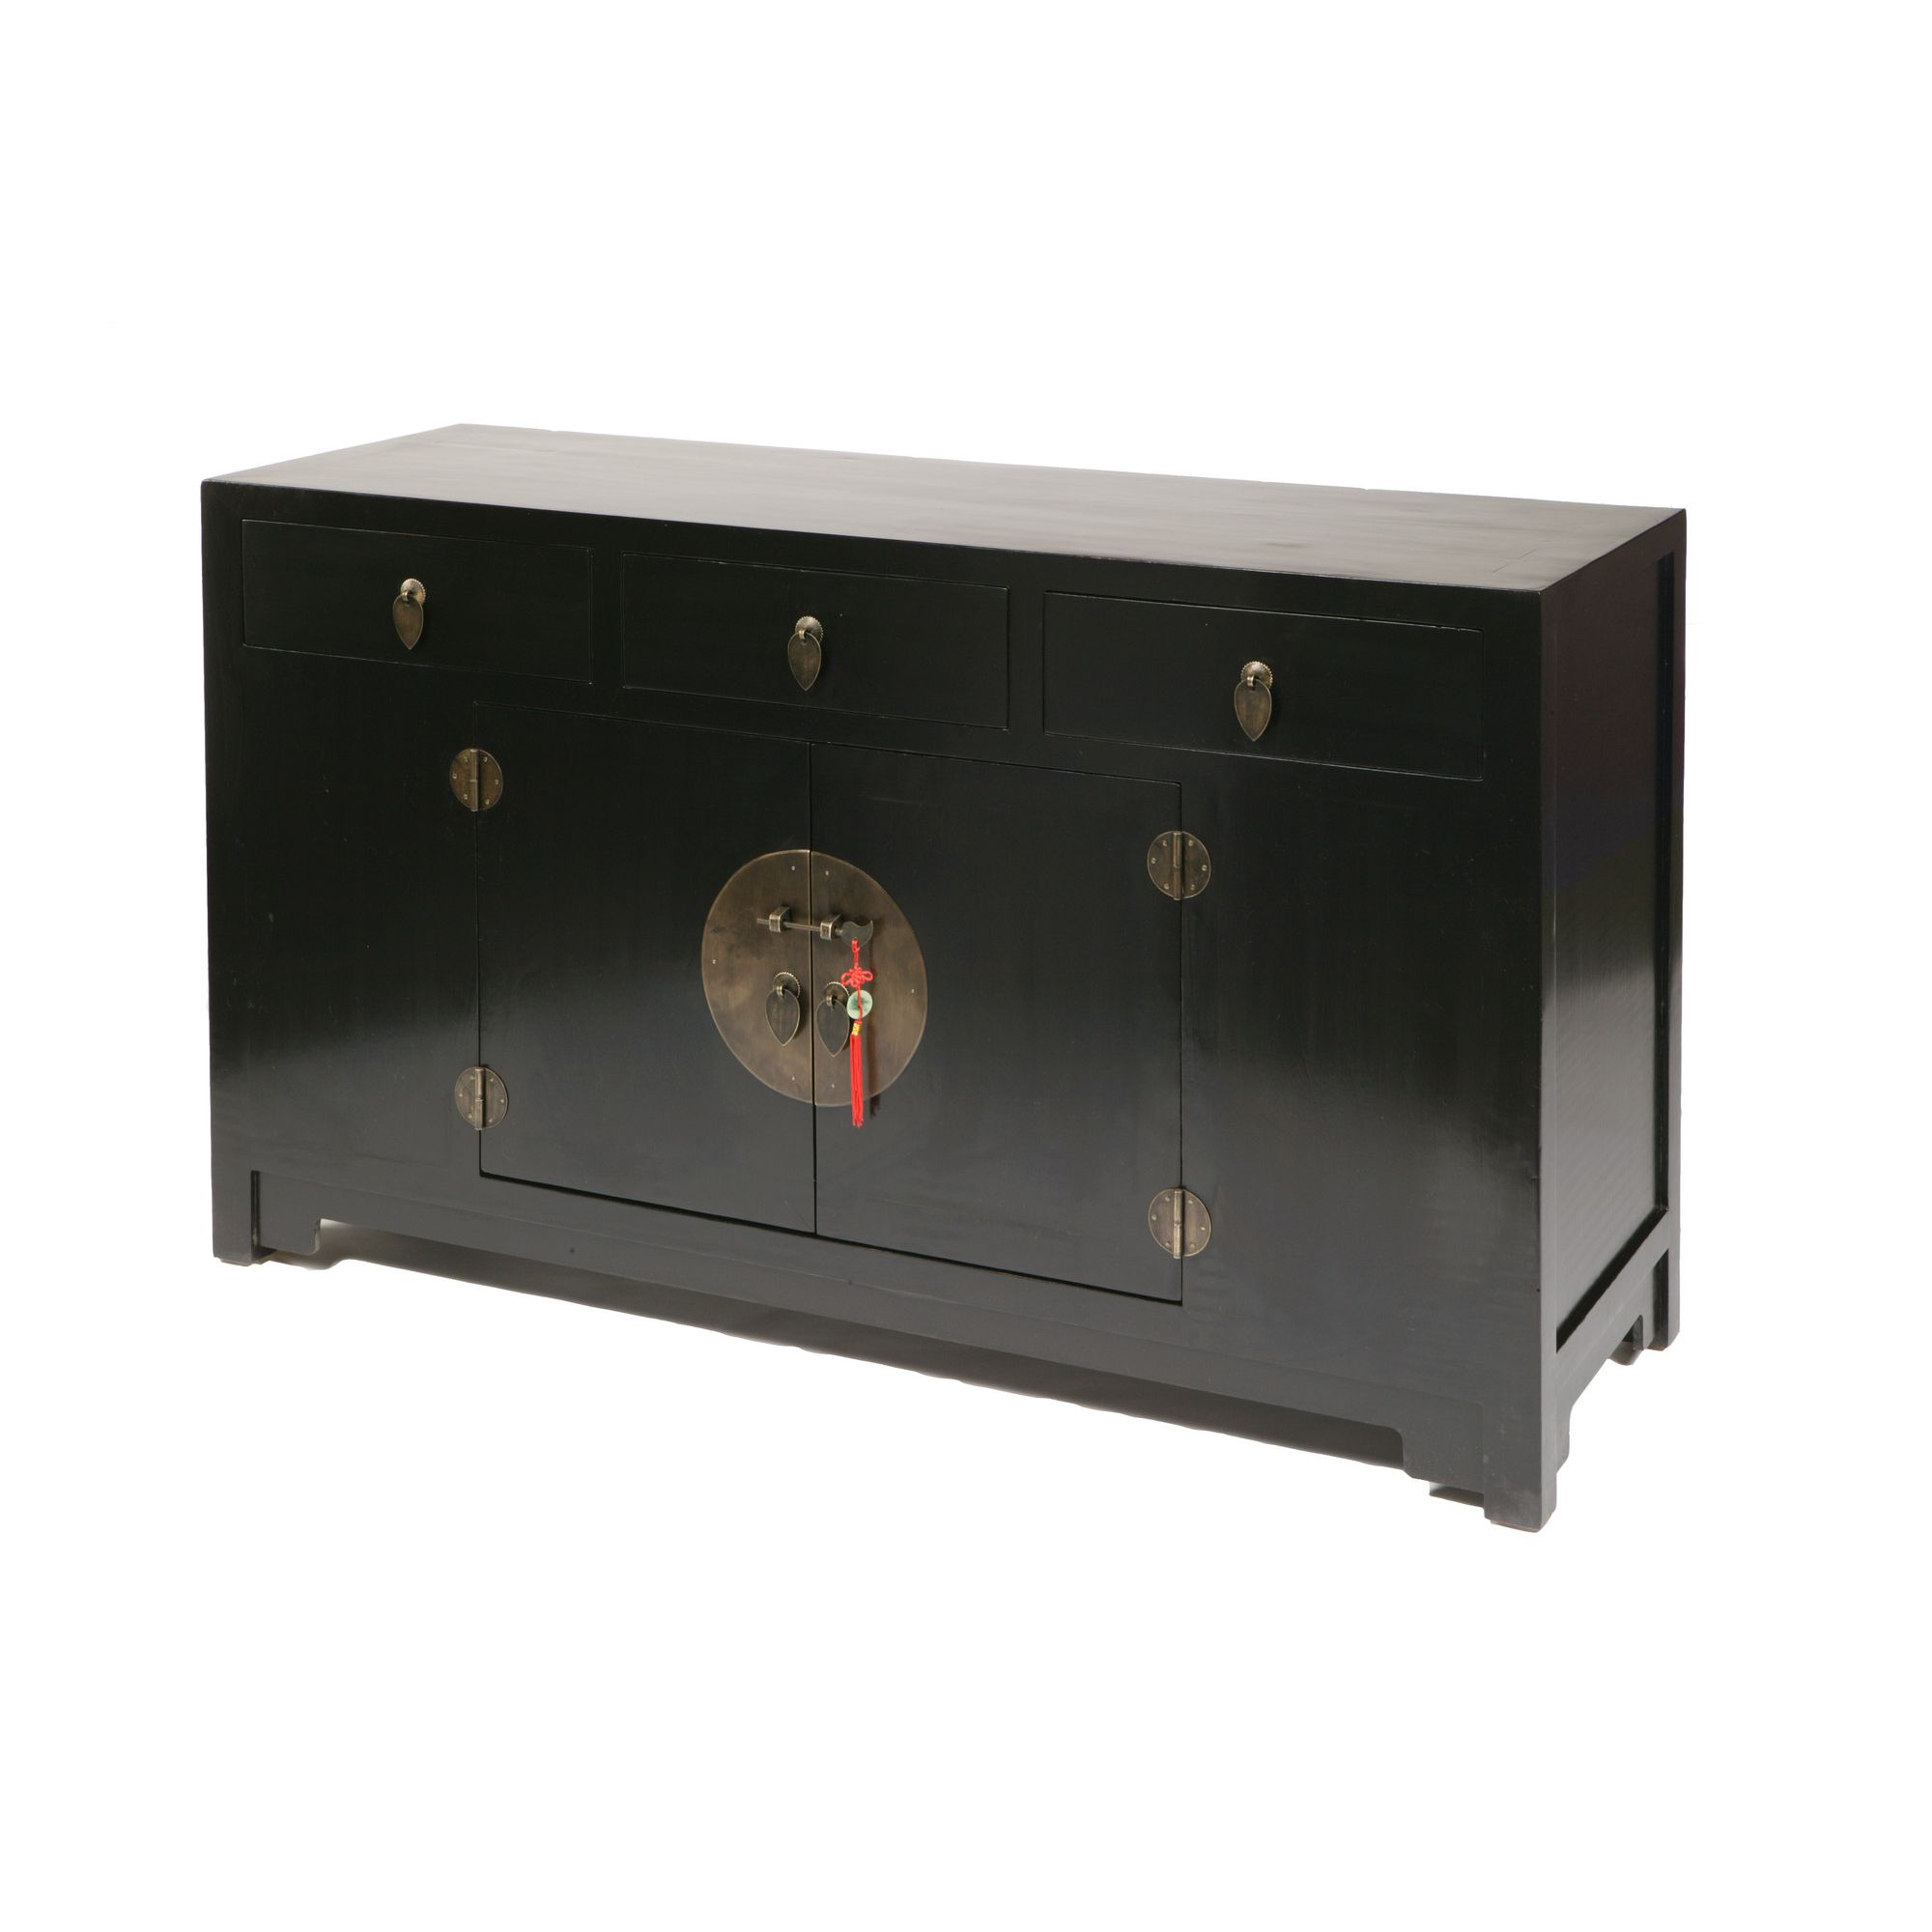 Shimu Chinese Classical Ming Sideboard - Black Lacquer at Tescos Direct